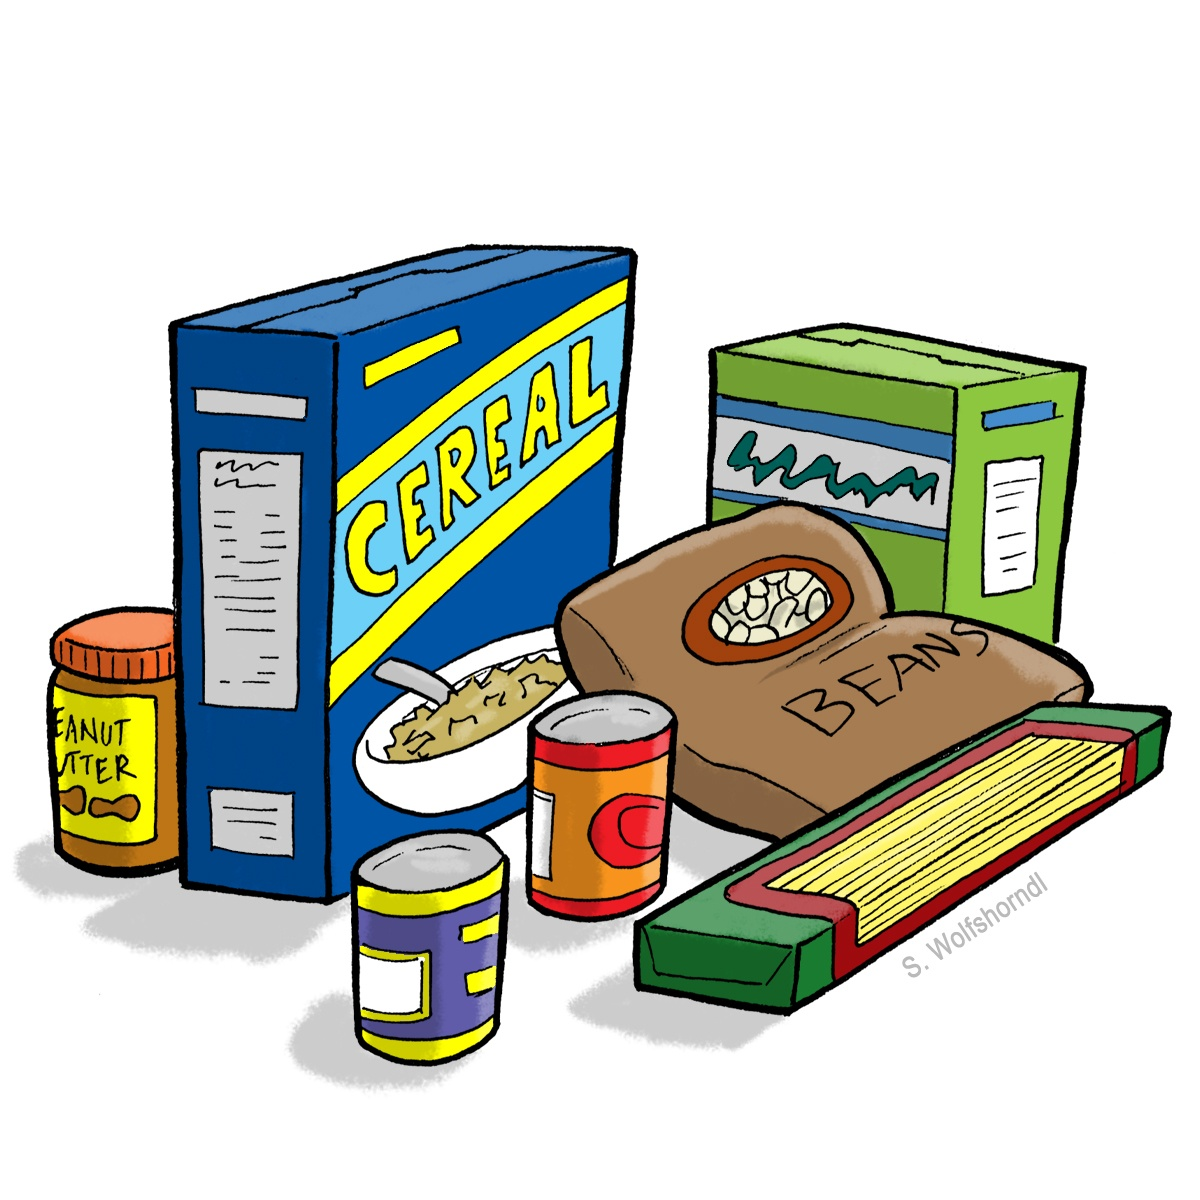 Puree Clipart Canned Food Clipart Canned Food Clipartnon Perishable